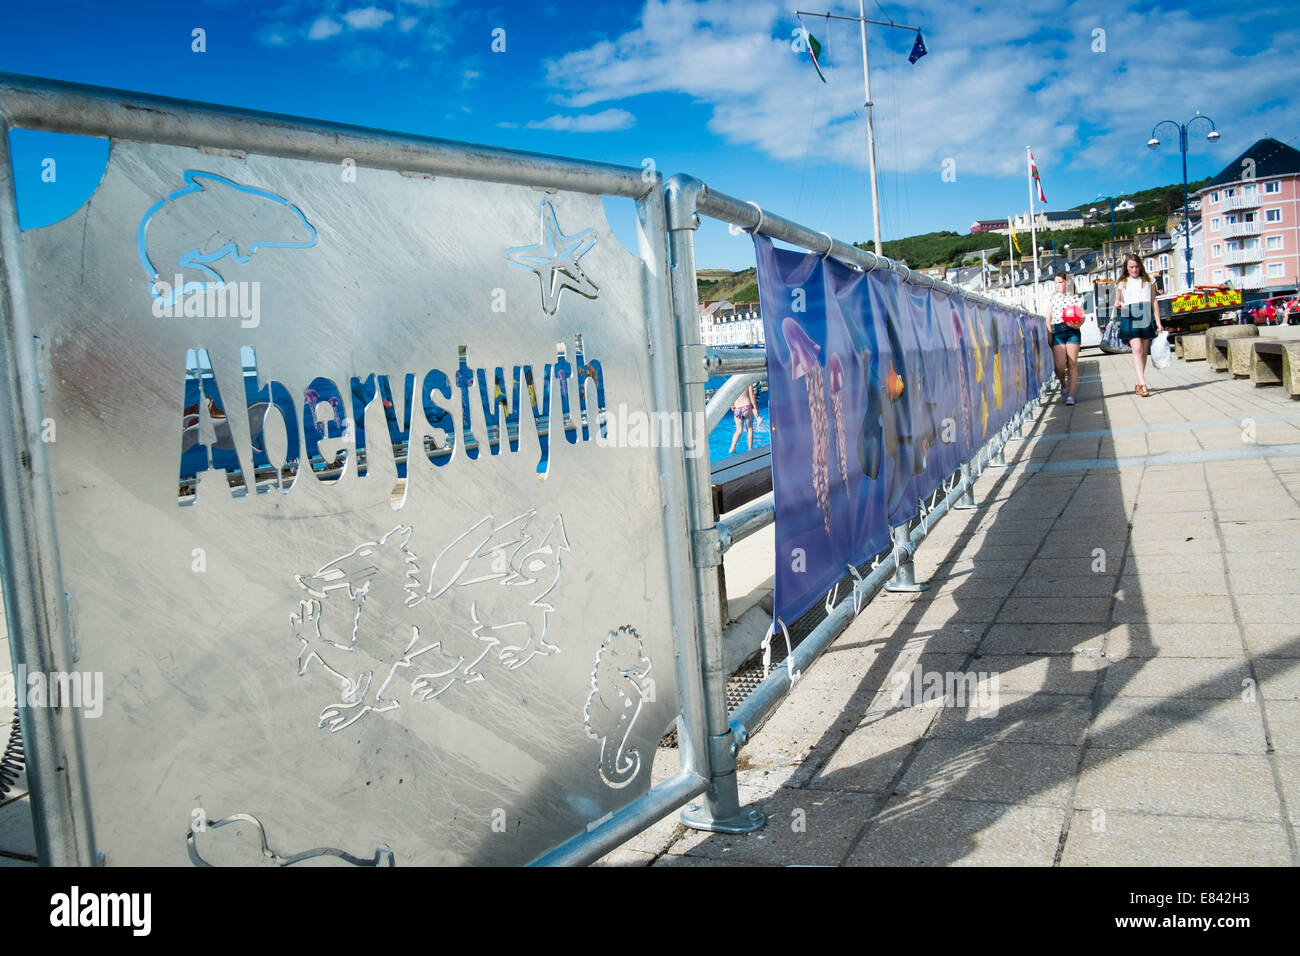 Aberystwyth town name cut out in stencil lettering on a metal gate to childrens paddling pool, Wales UK - Stock Image